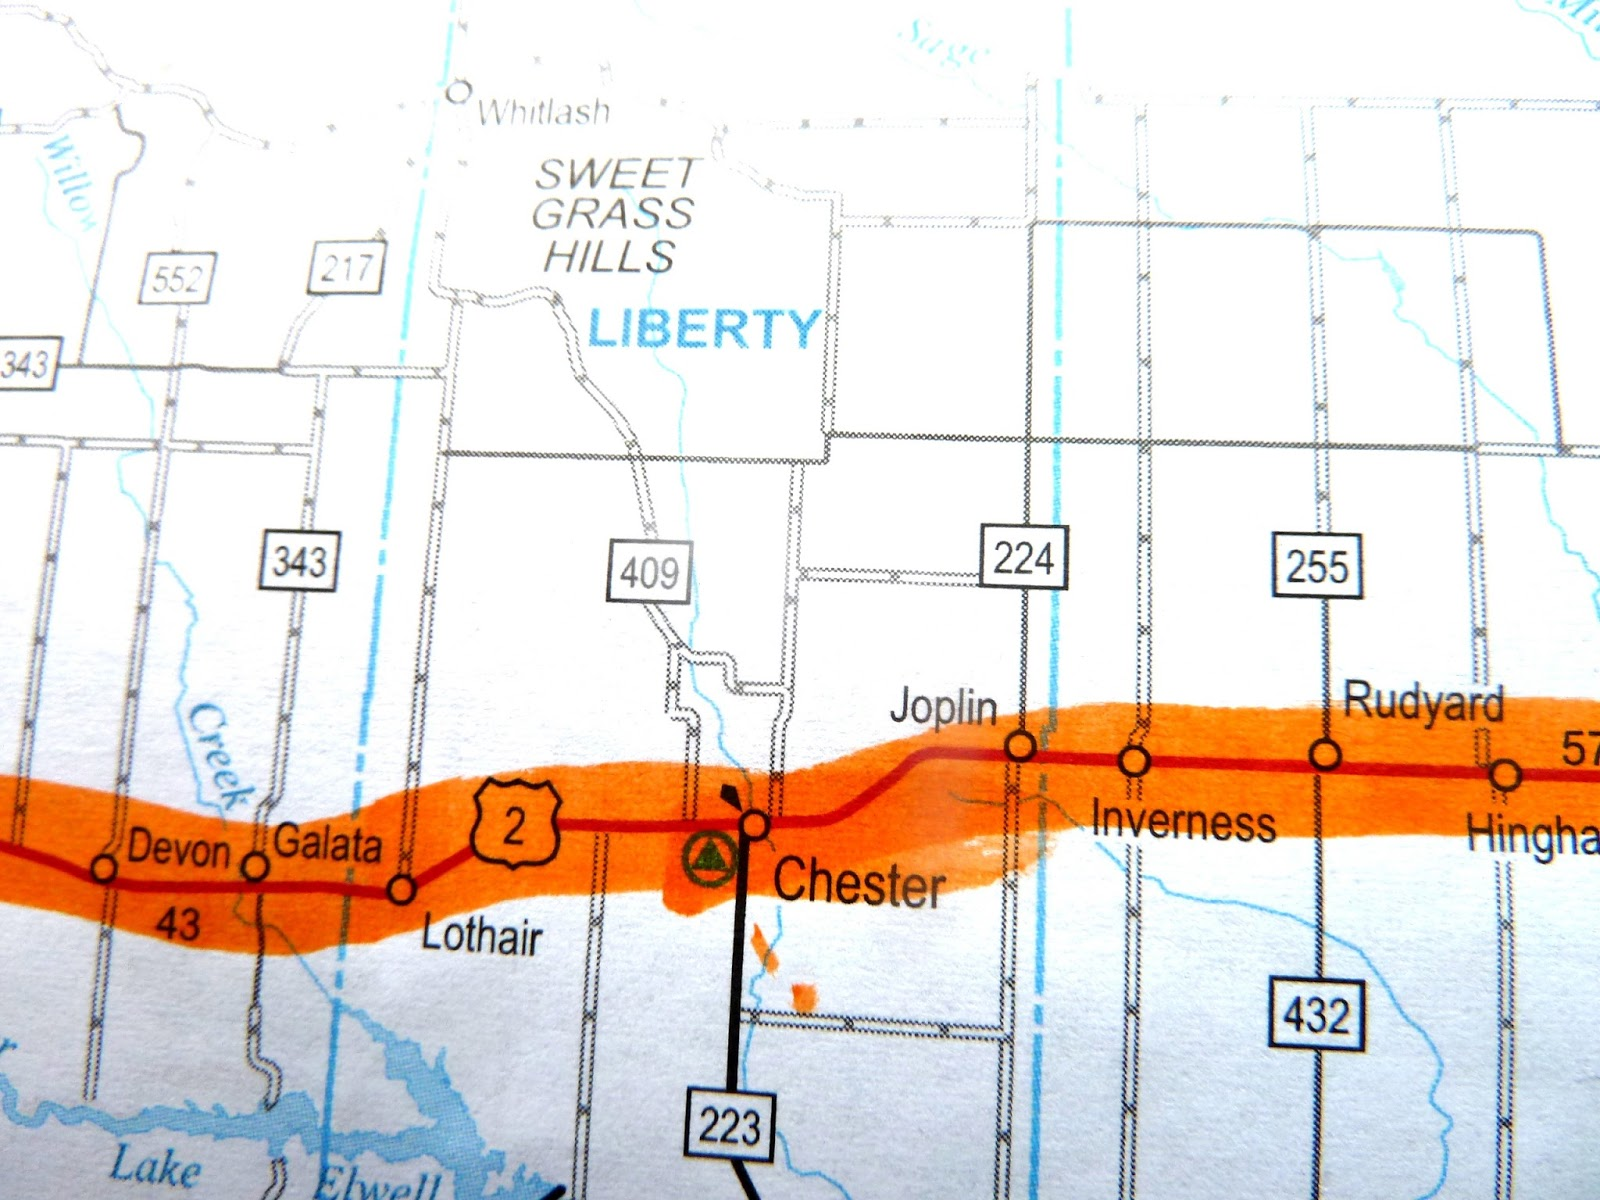 Seniors Walking Across America POST JULY ROUTE - Us route 2 map